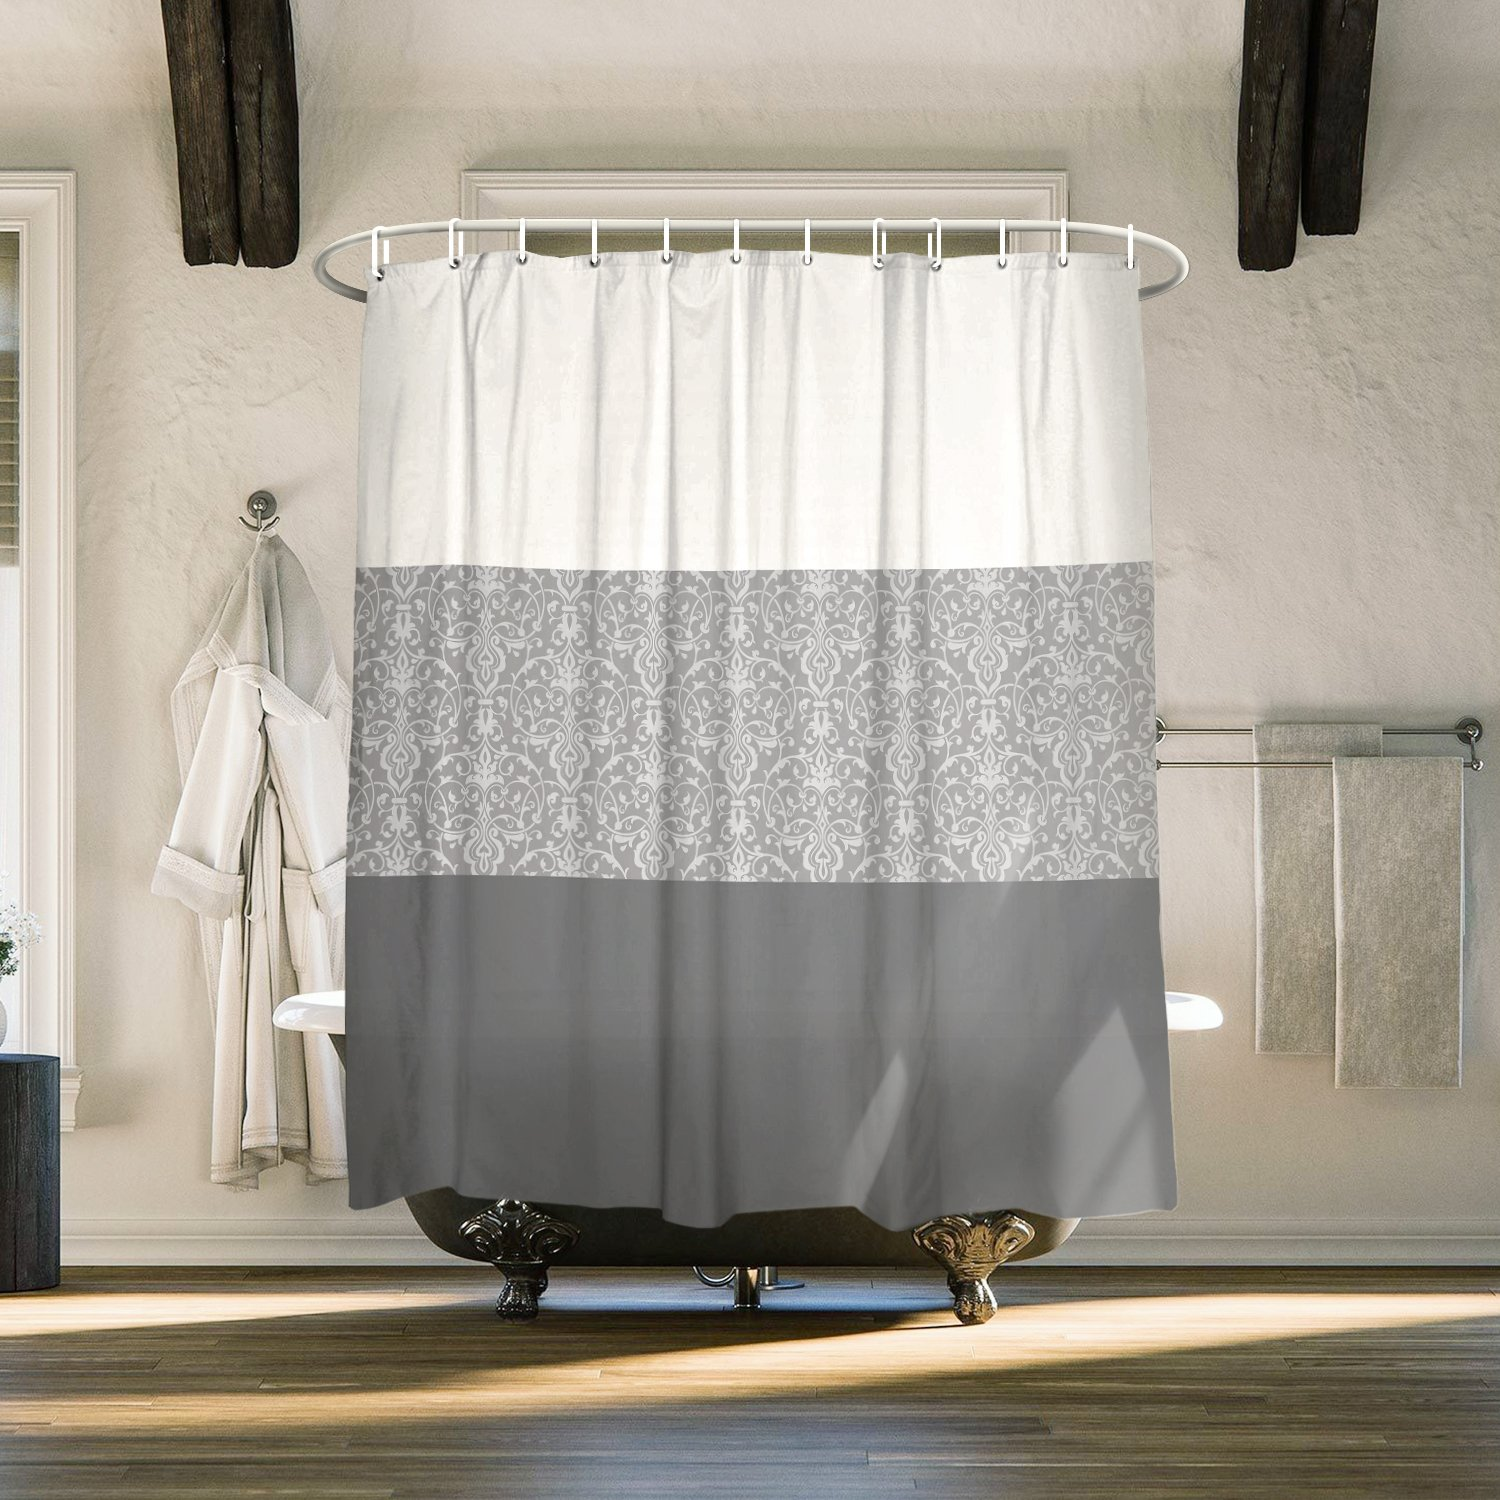 Cloud Dream Home Chateau Striped Fabric Shower Curtain for Bathroom Set with 12 Hooks, 84 inches Extra Long,Gray TK-CRY-1342